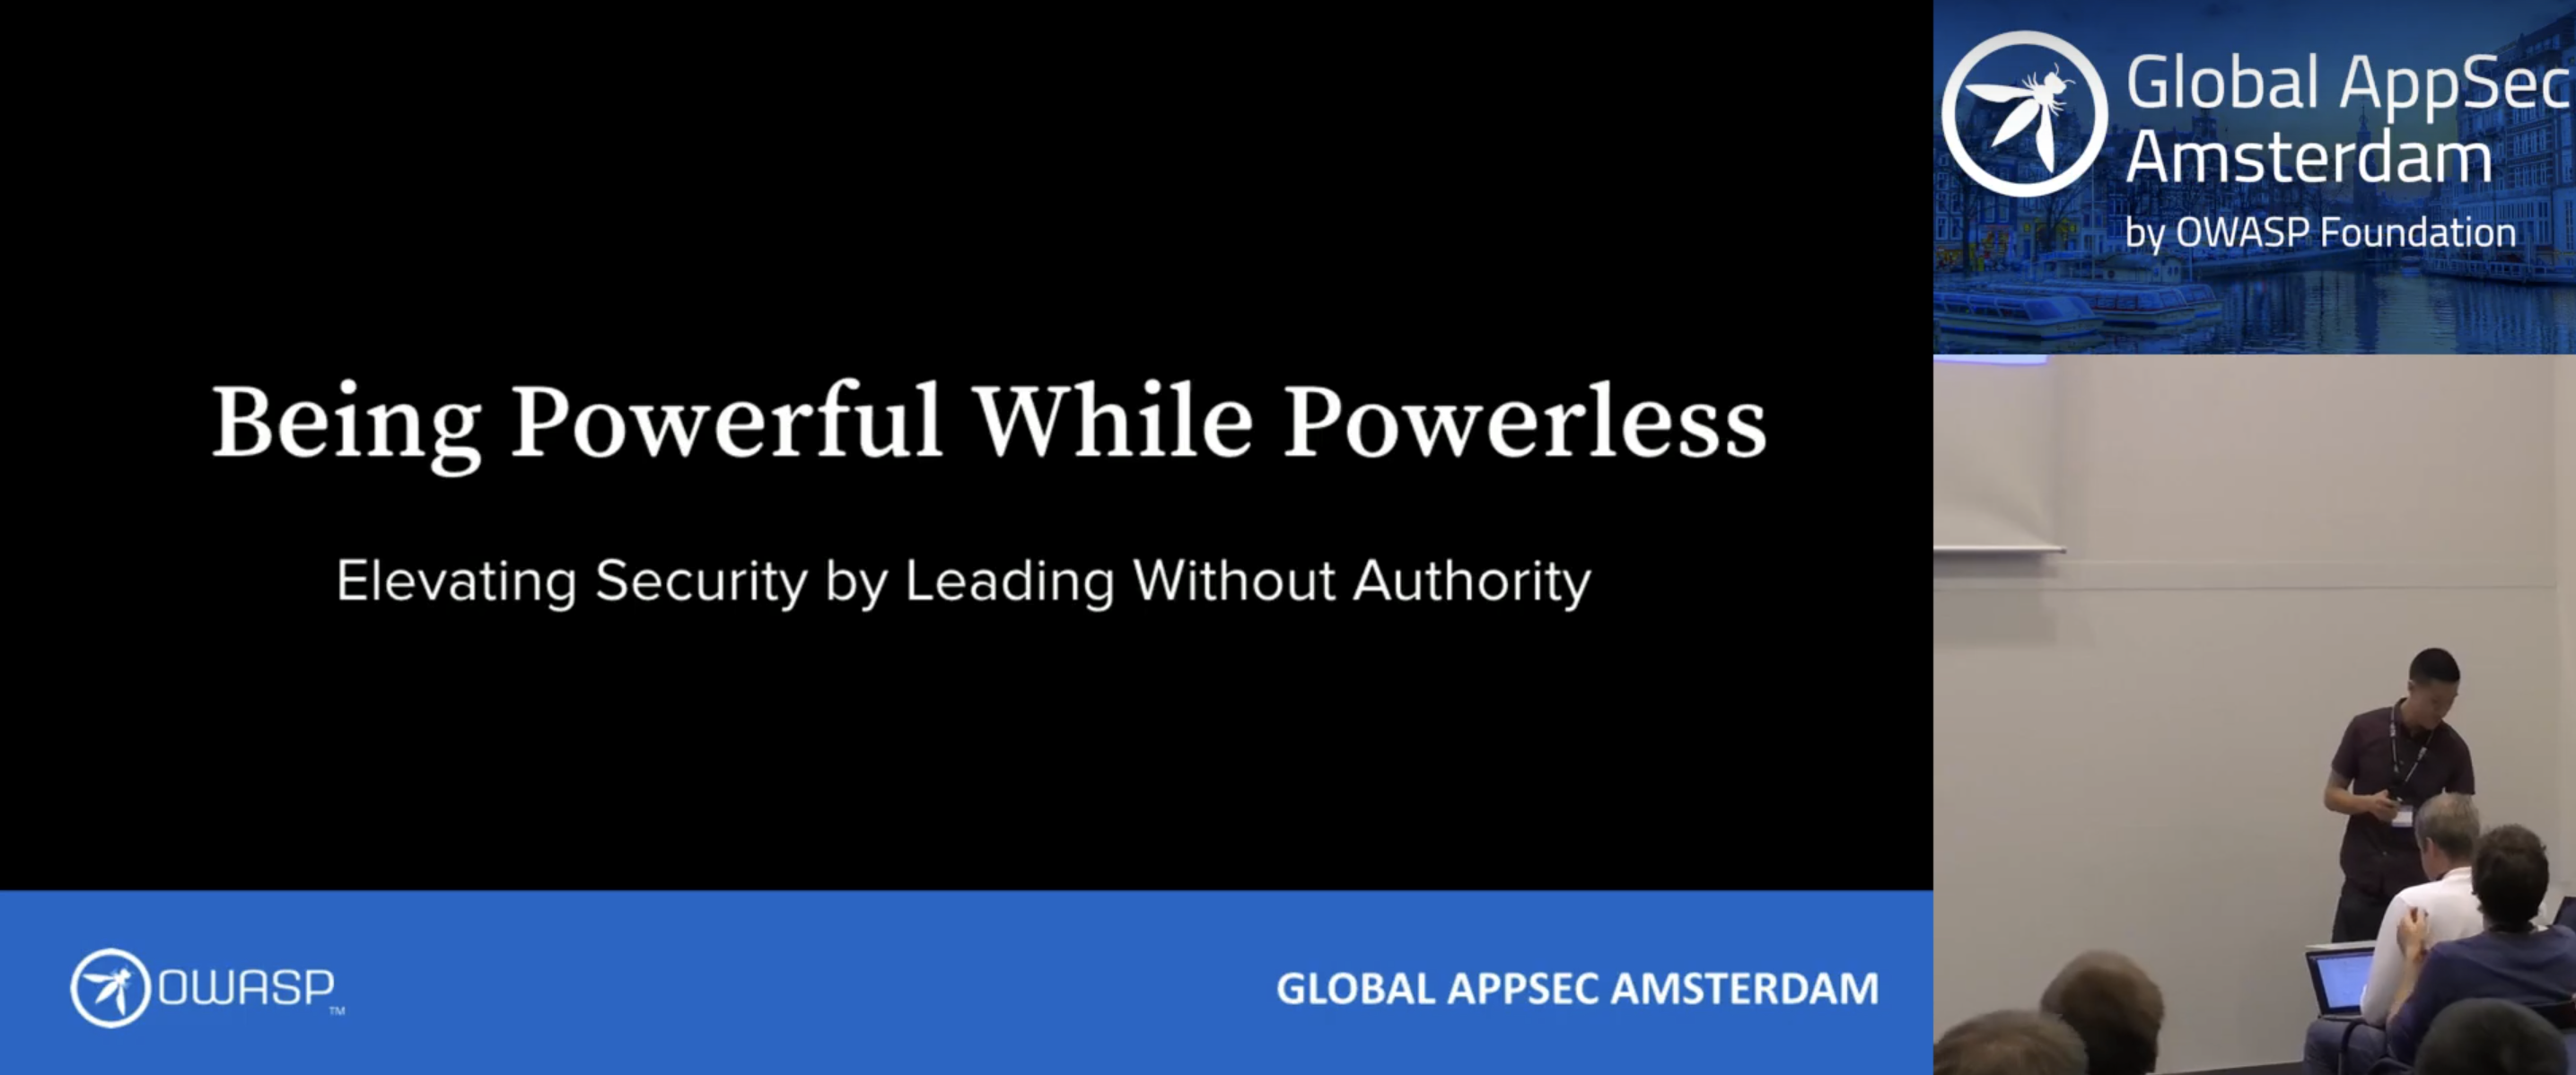 Being Powerful While Powerless: Elevating Security By Leading Without Authority